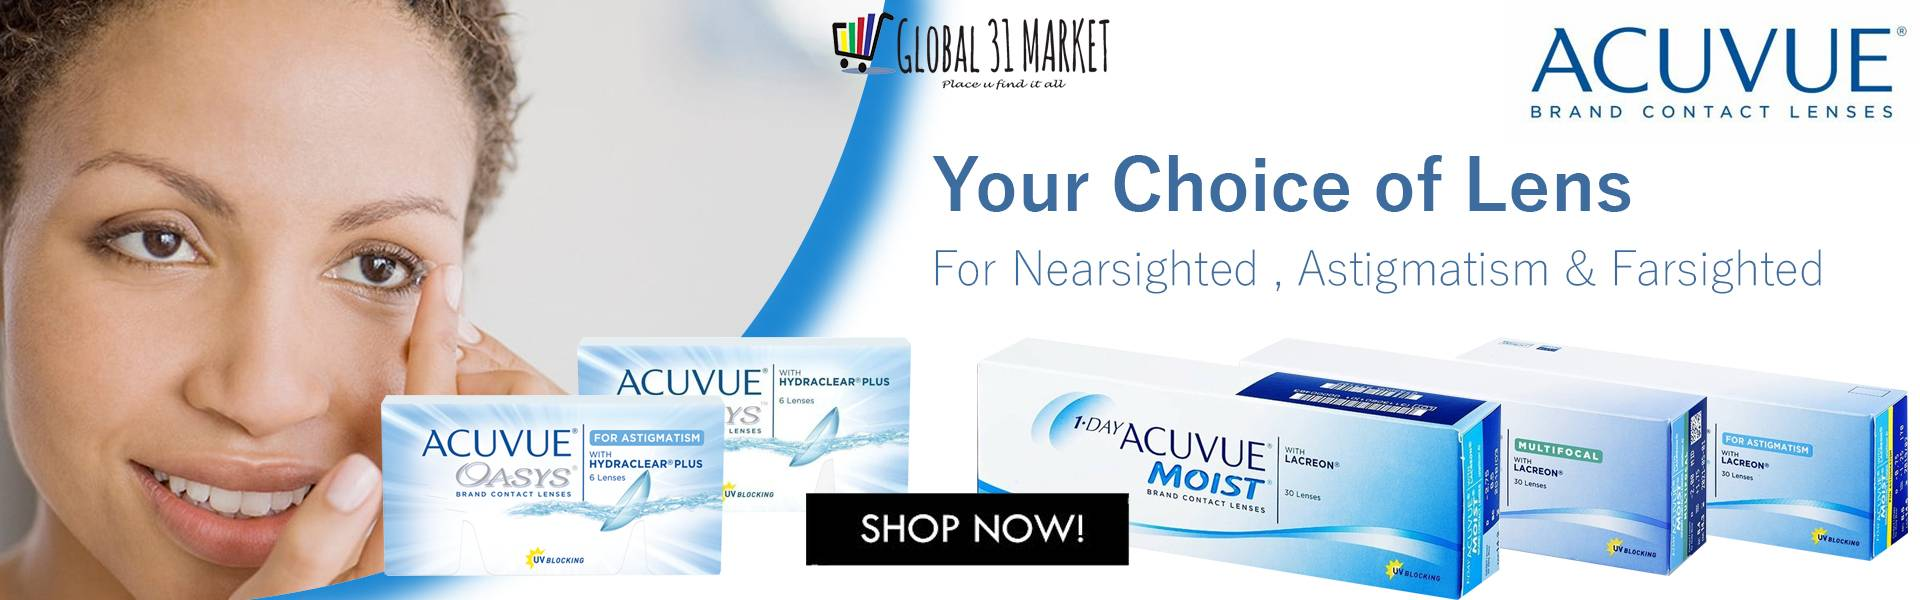 Acuvue family contact lens with global 31 Market